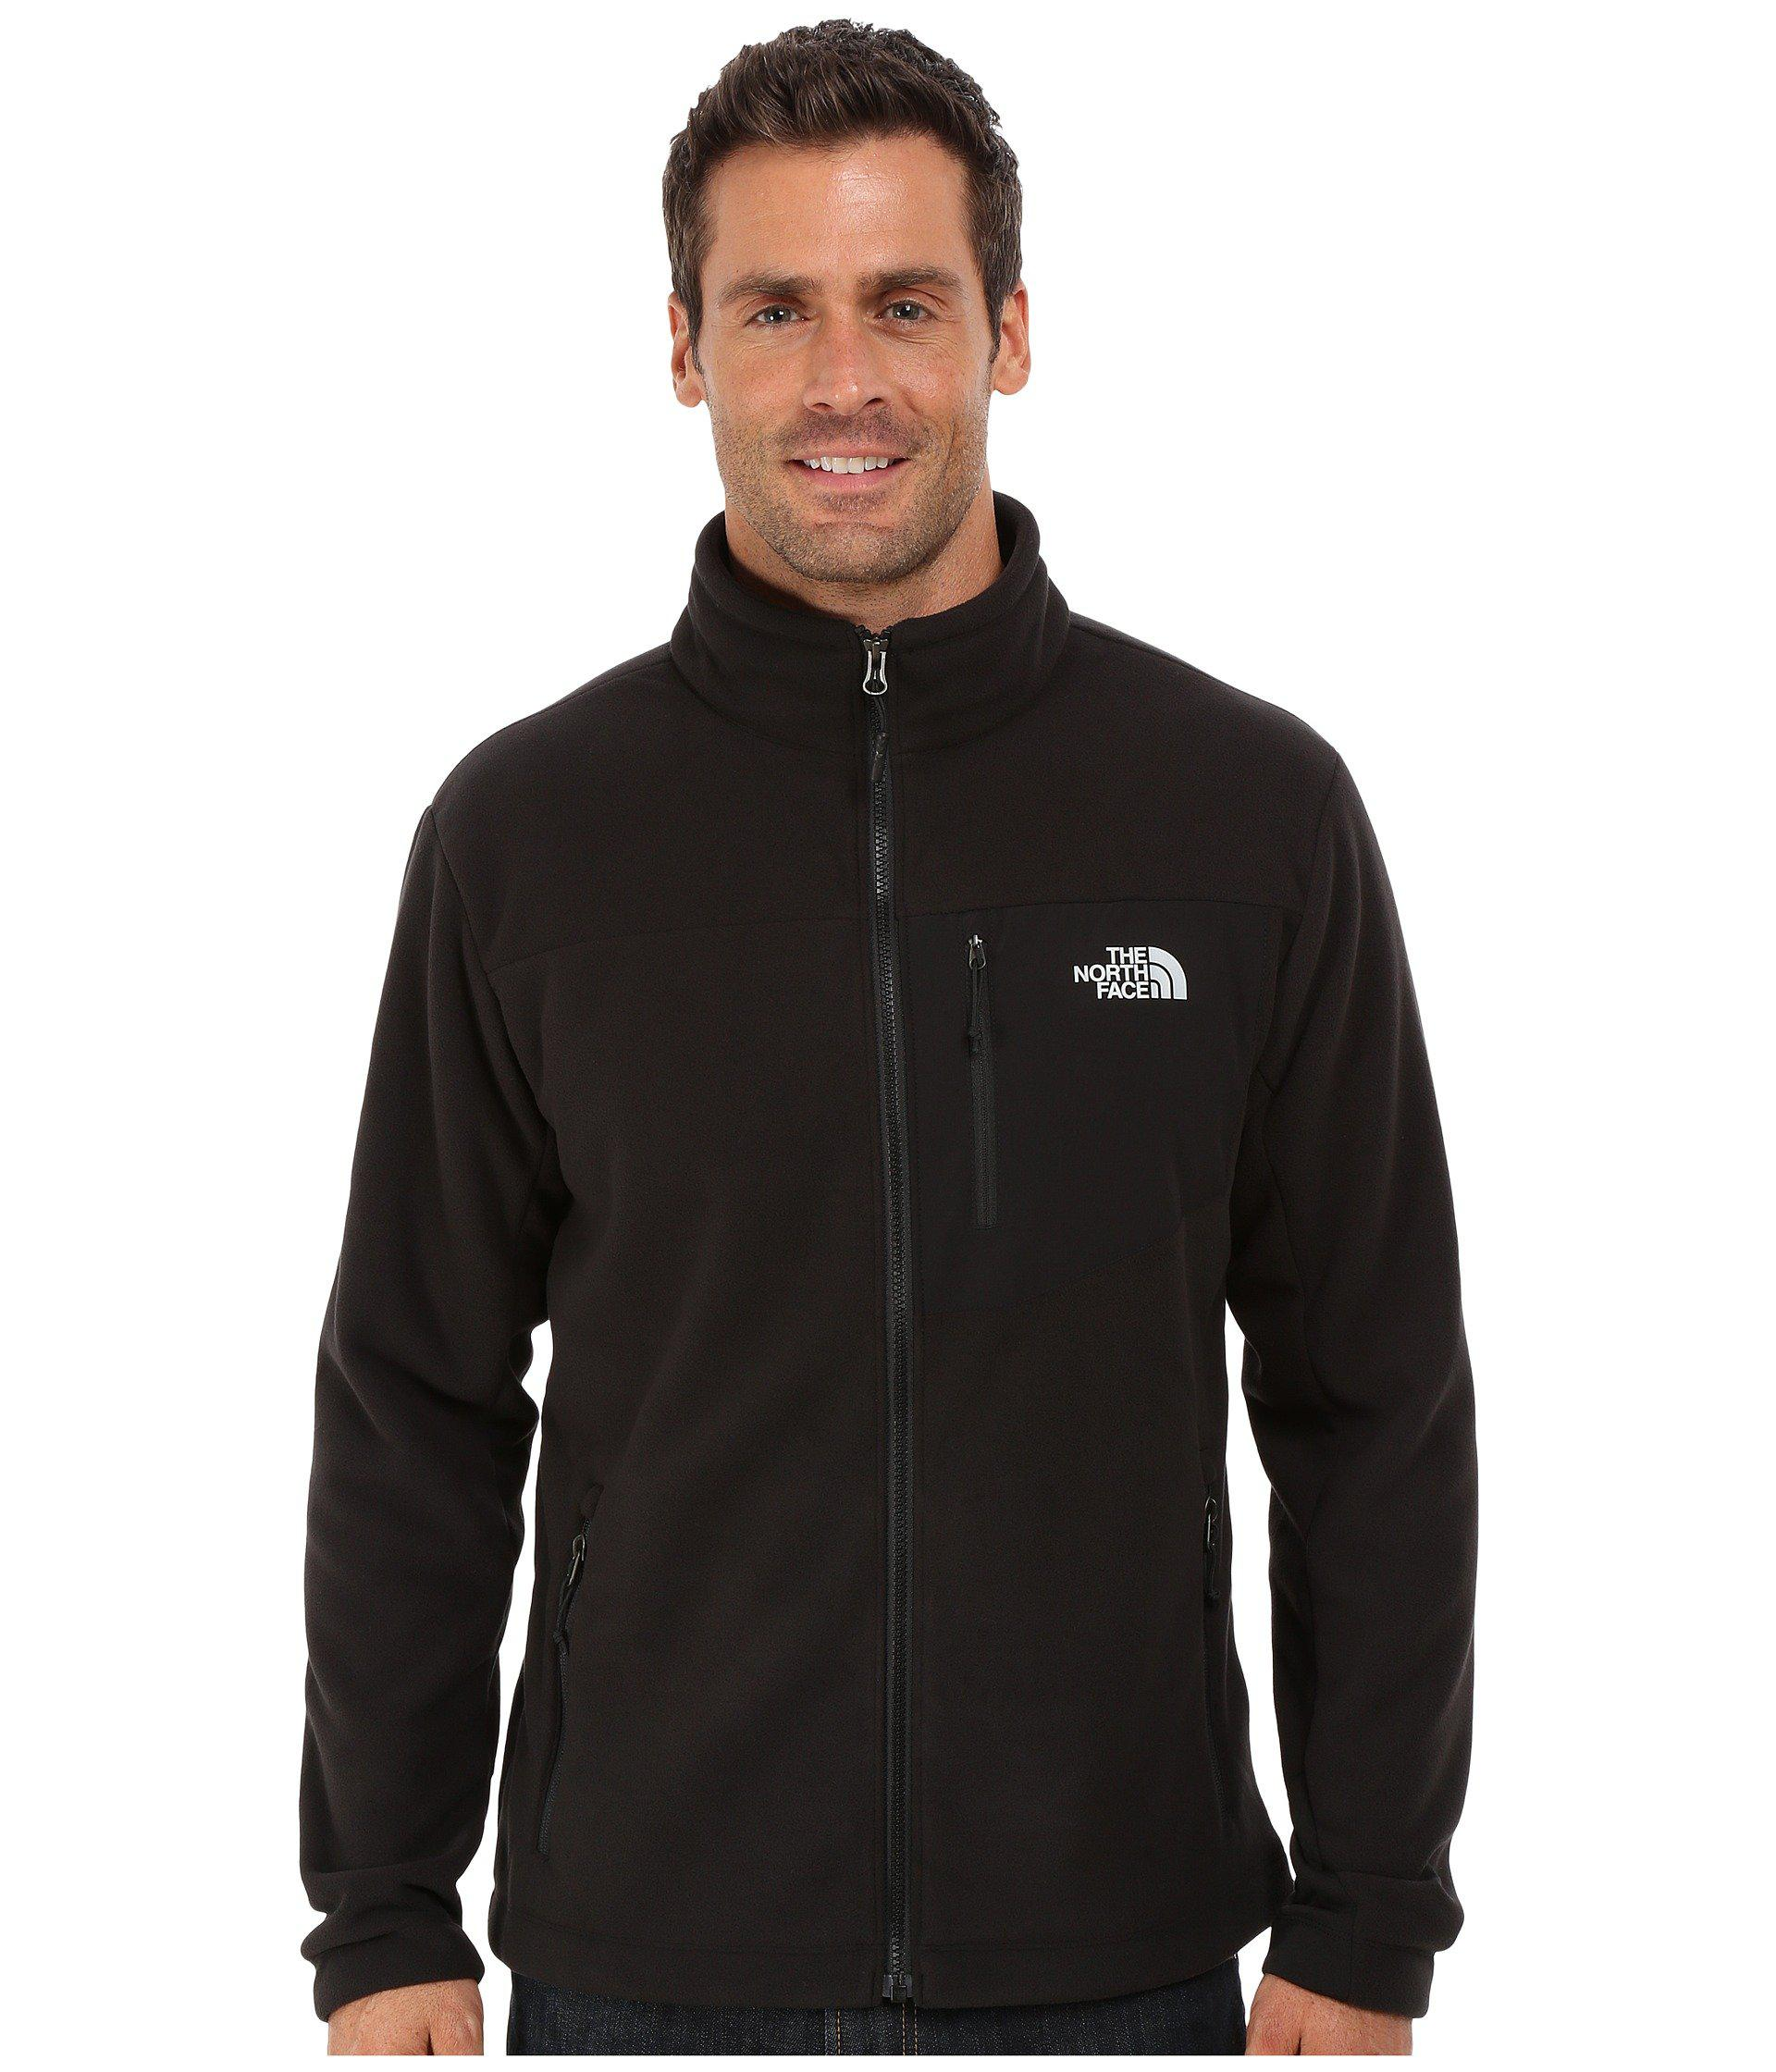 The North Face. Men's Black Chimborazo Full Zip Fleece